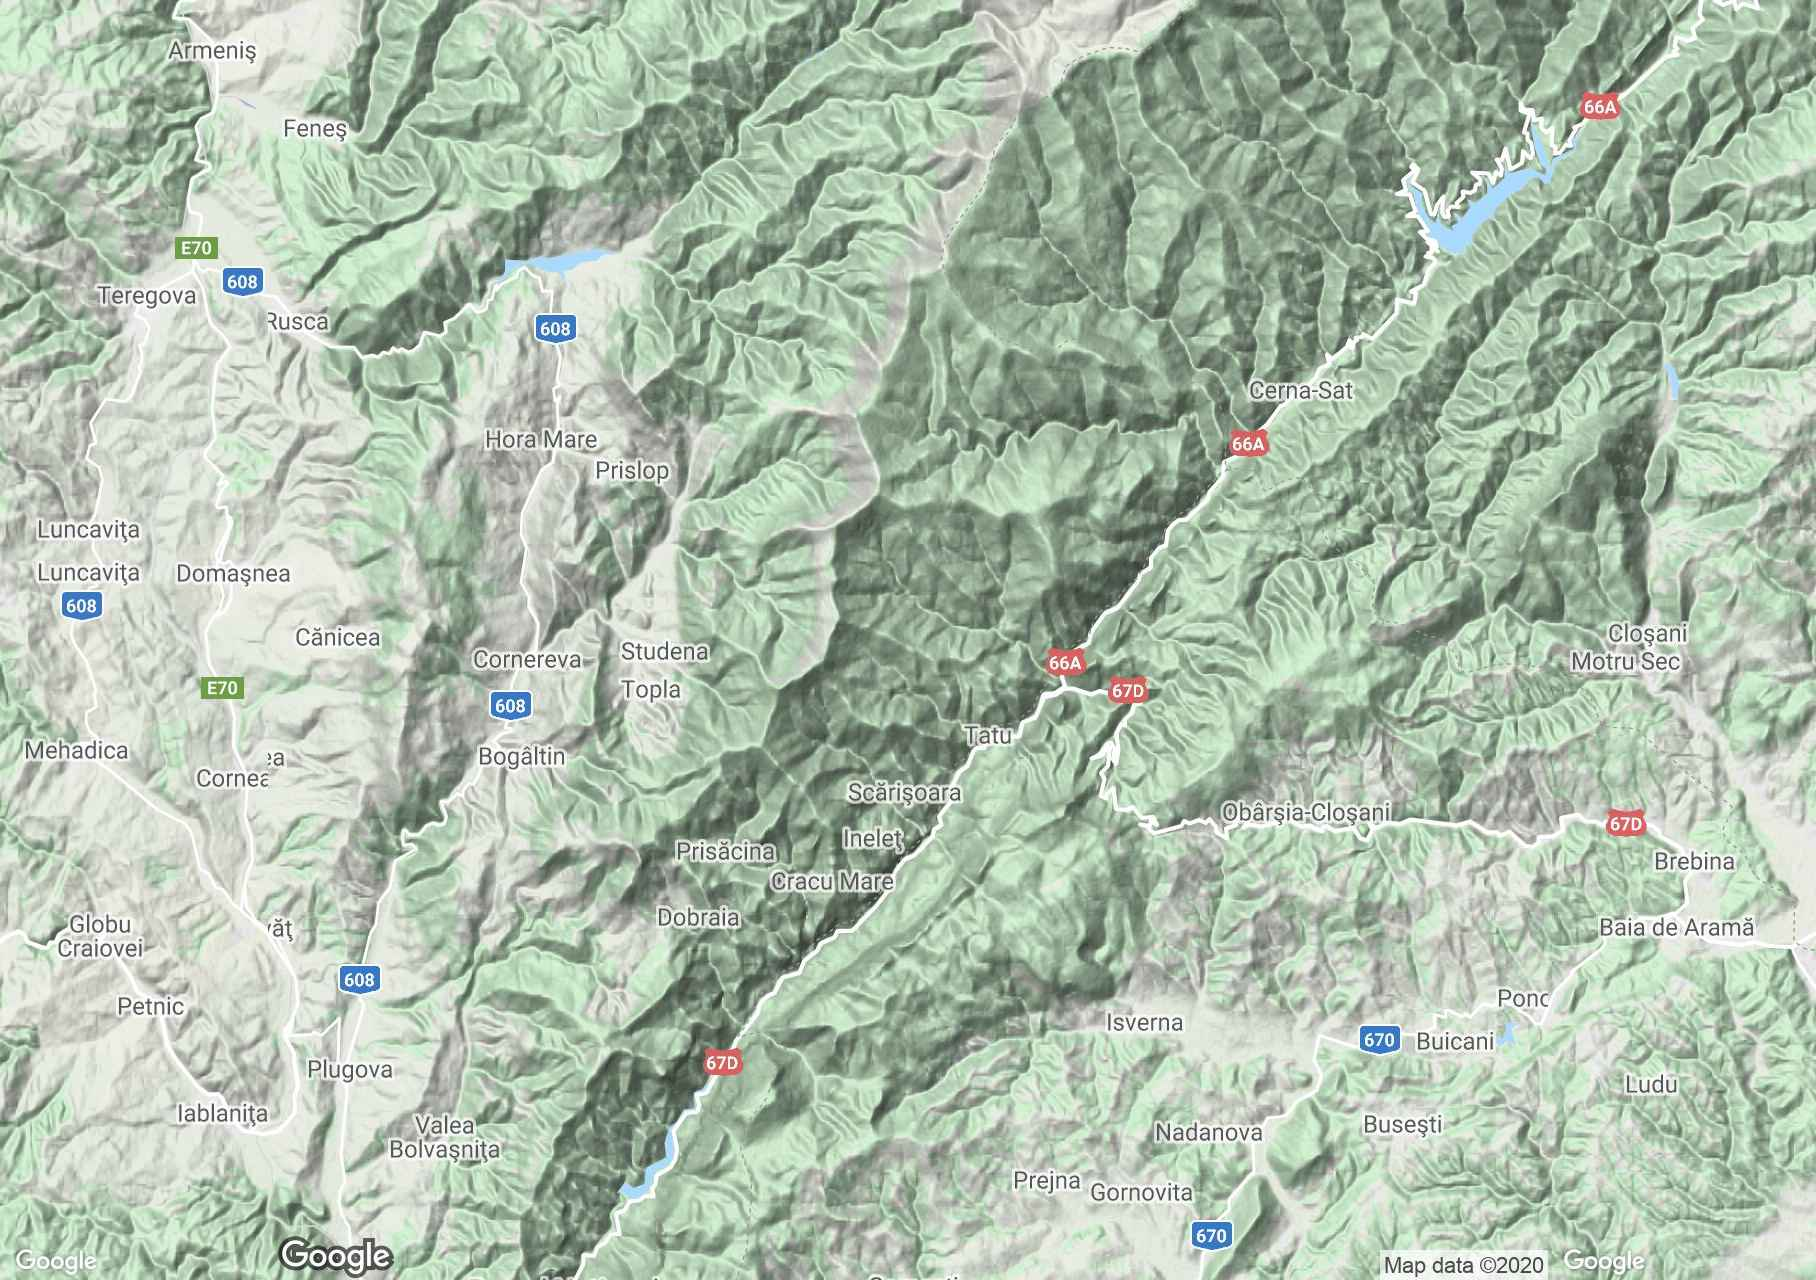 Cernei Mountains, Interactive tourist map